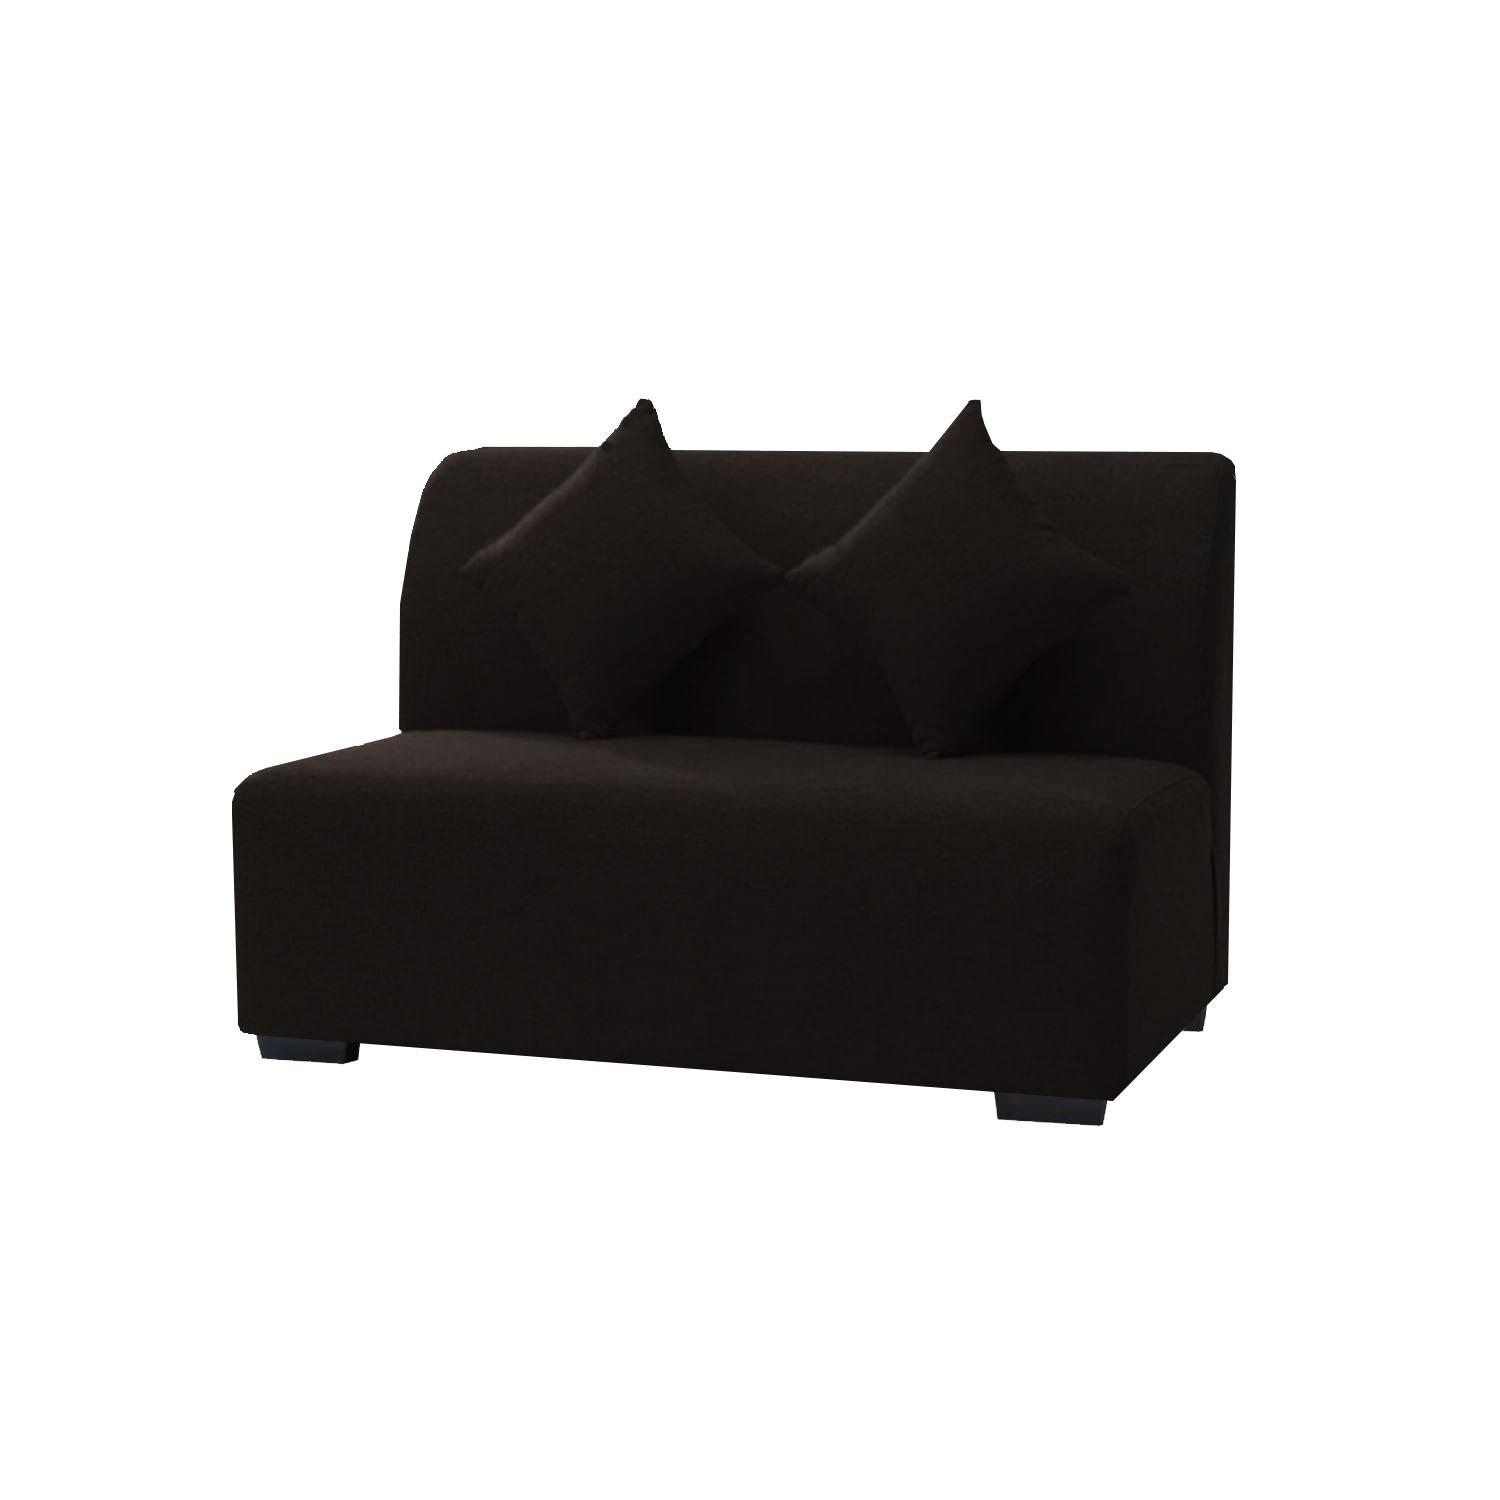 Canro Love Seat Faux Leather